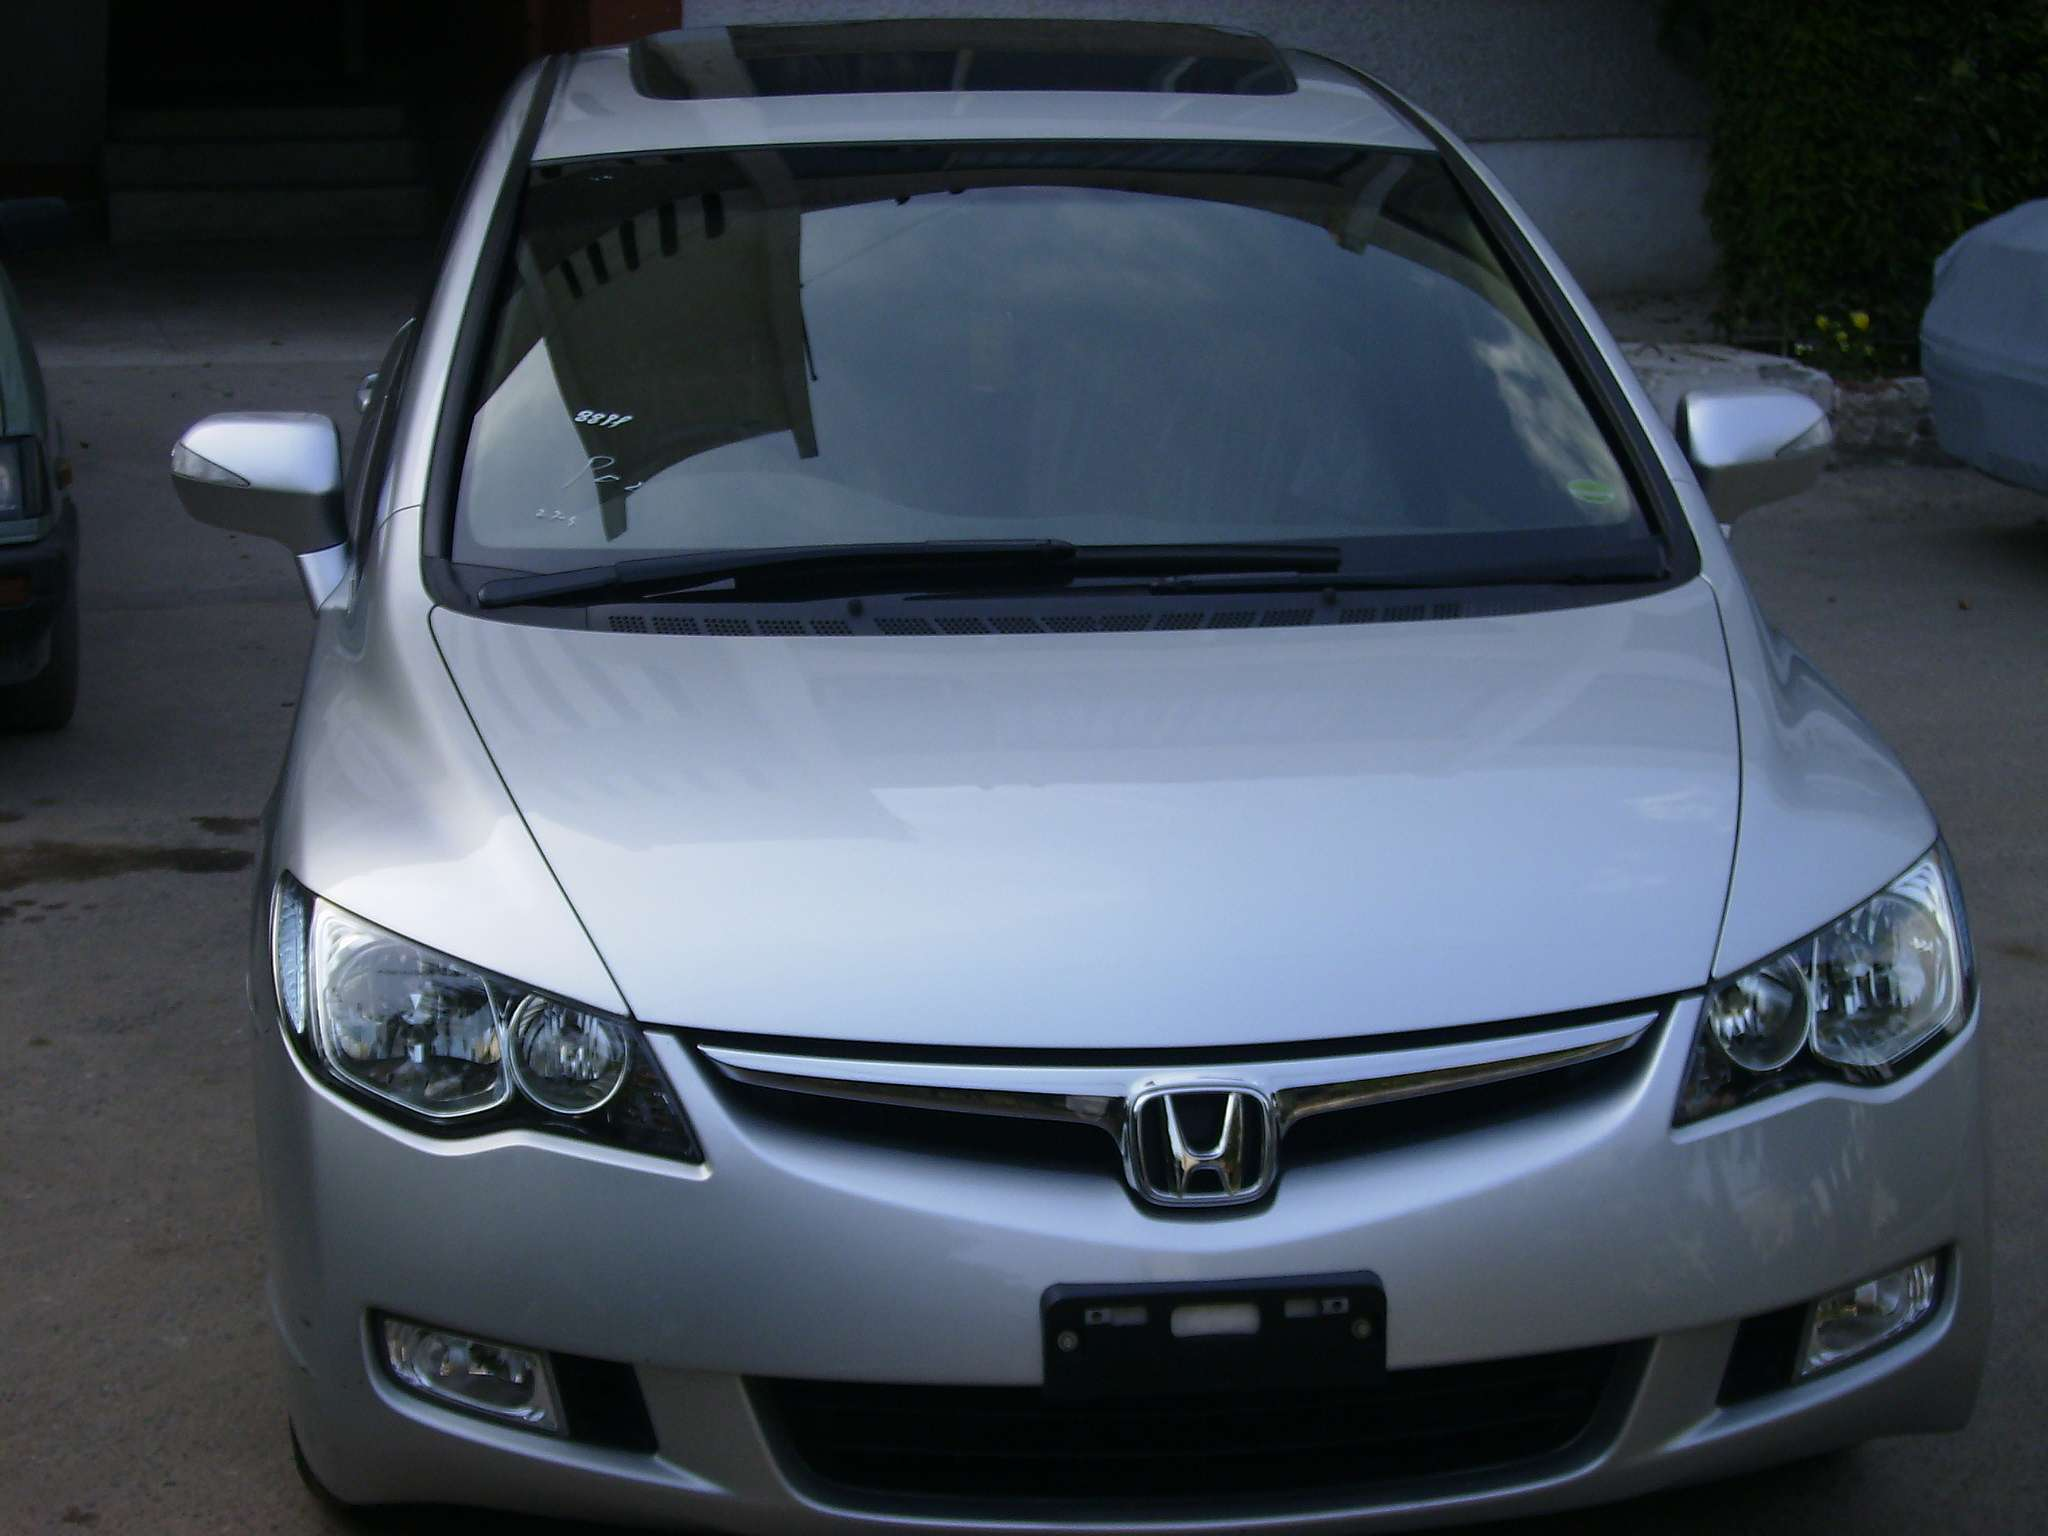 Used 2007 Honda Civic For Sale   Peshawar, Pakistan   Free Classifieds    Muamat